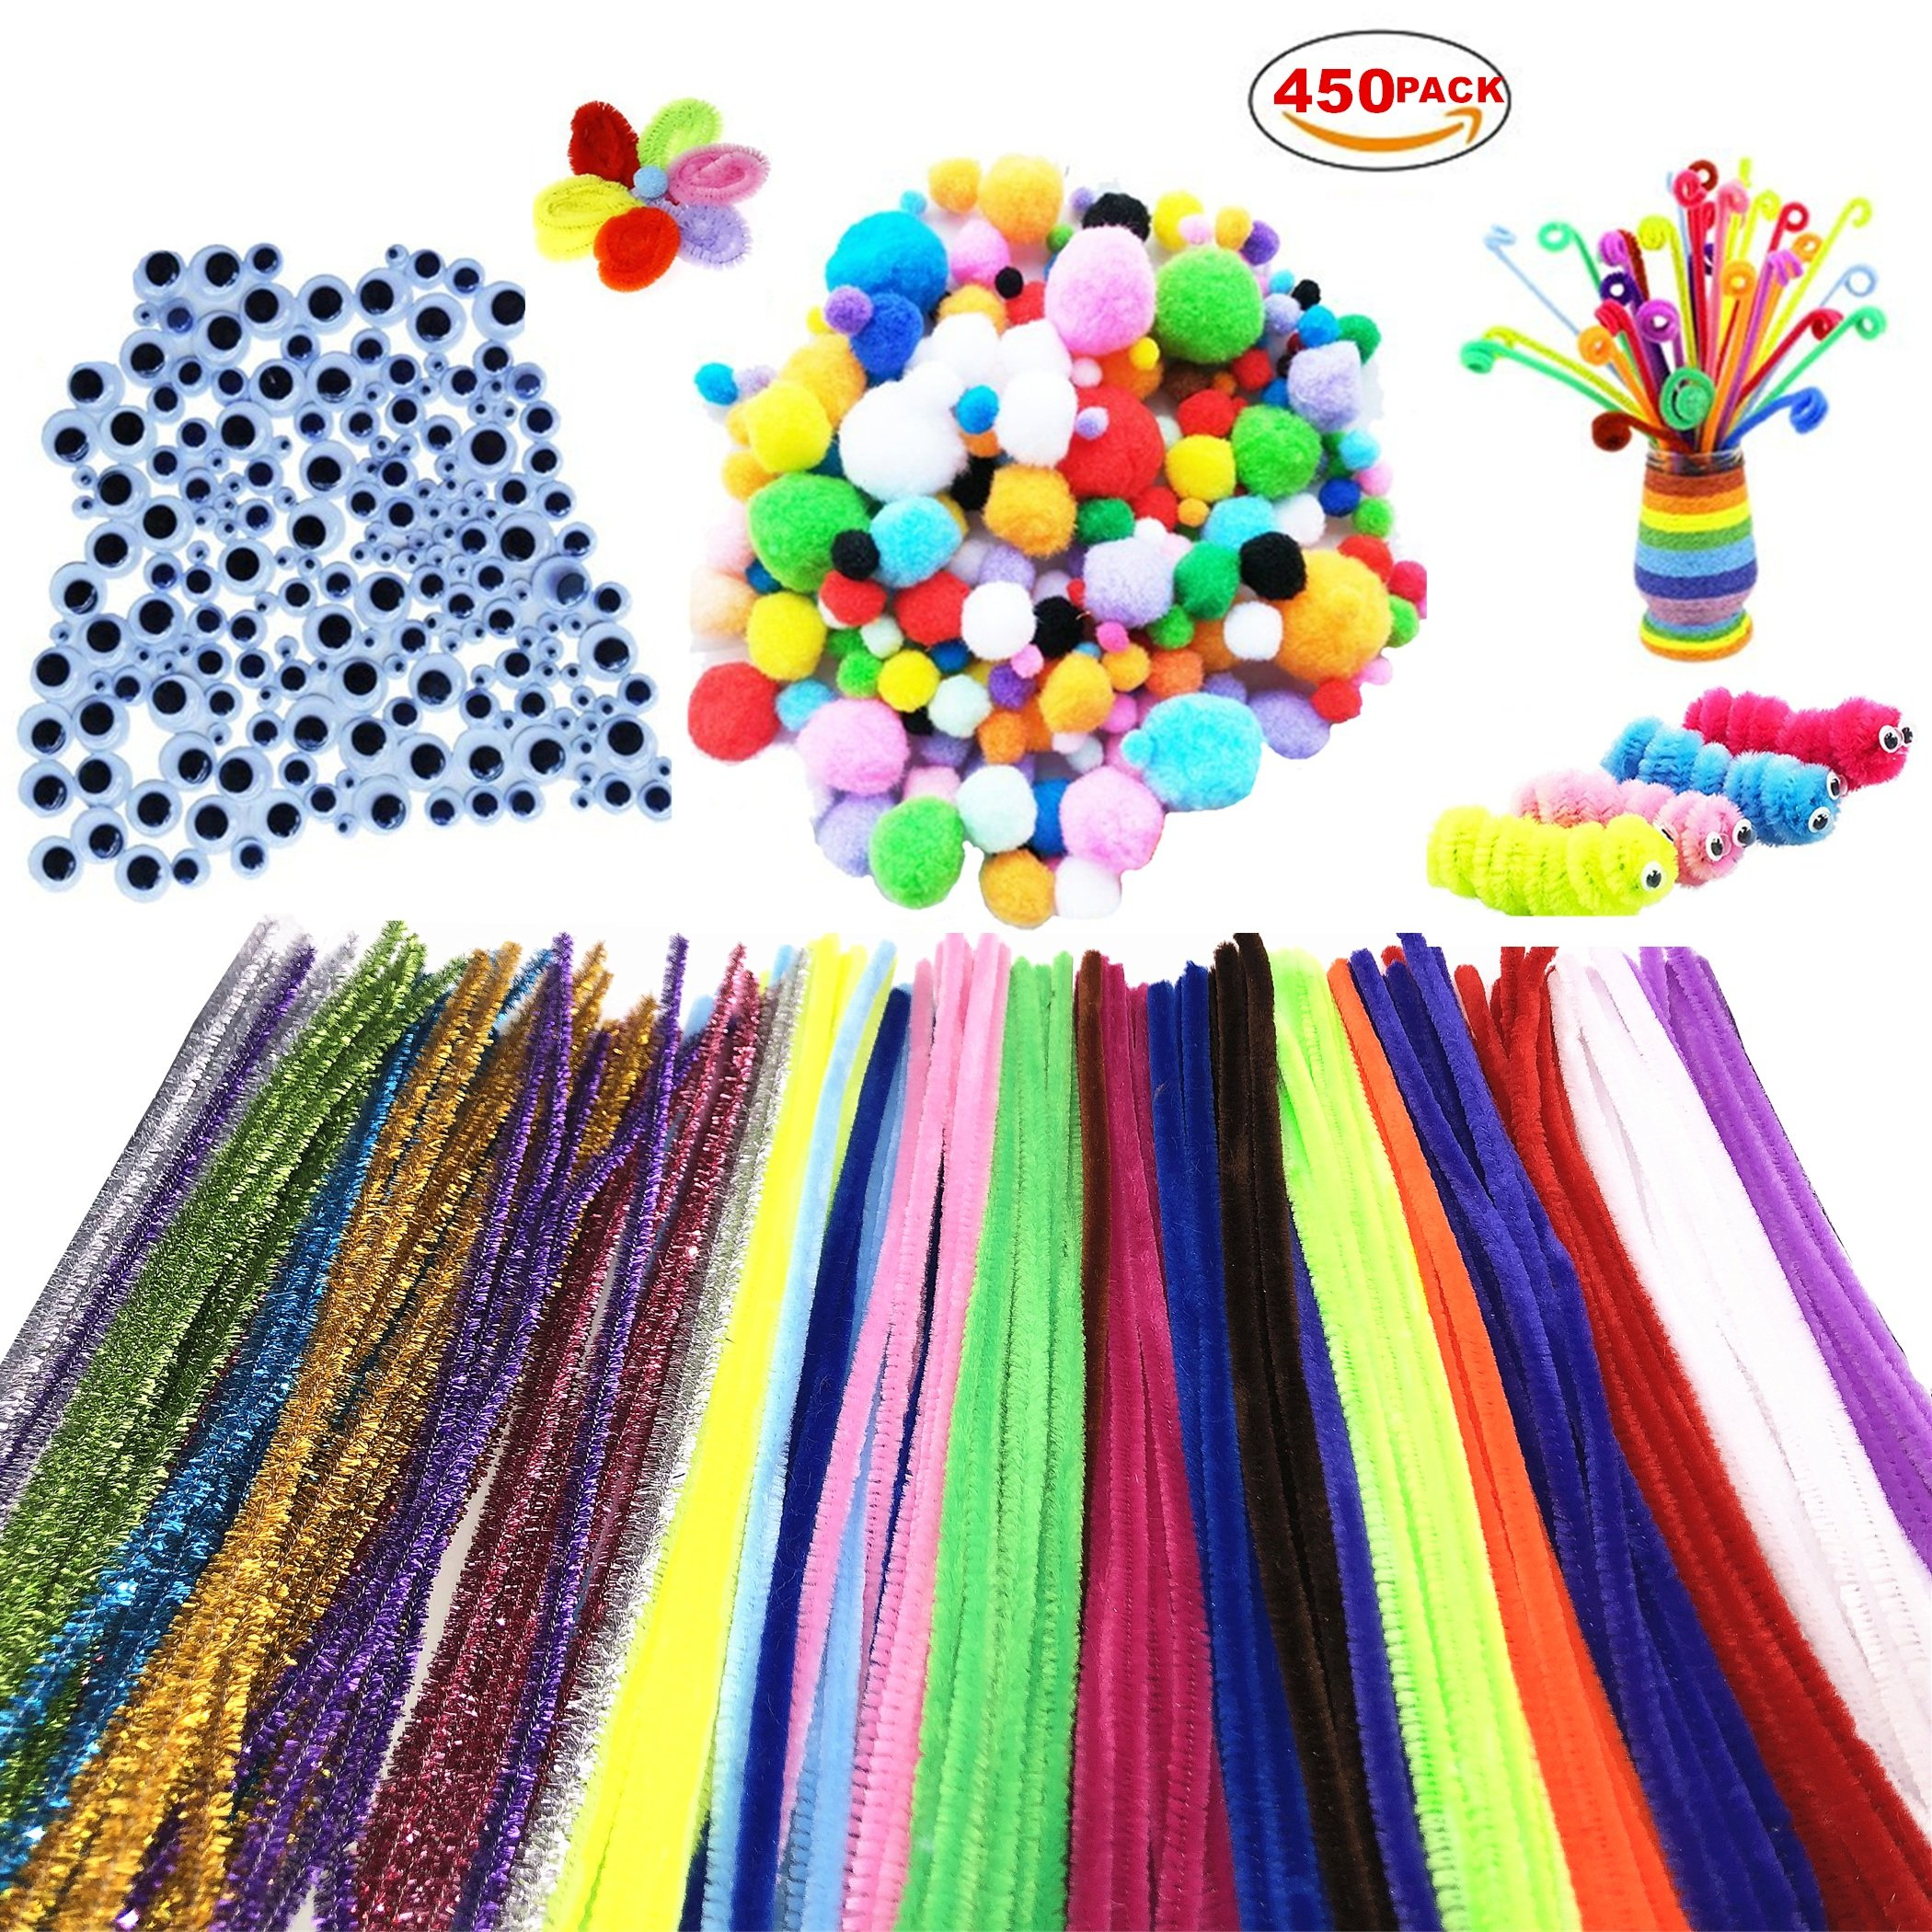 450Pcs Pom Poms Pipe Cleaners Chenille Stems DIY Art Craft Supplies Set , Including 200 Pcs 20 Colors Chenille Stems, 100 Pcs Pom Poms and 150 Pcs 3 Size Wiggle Googly Eyes